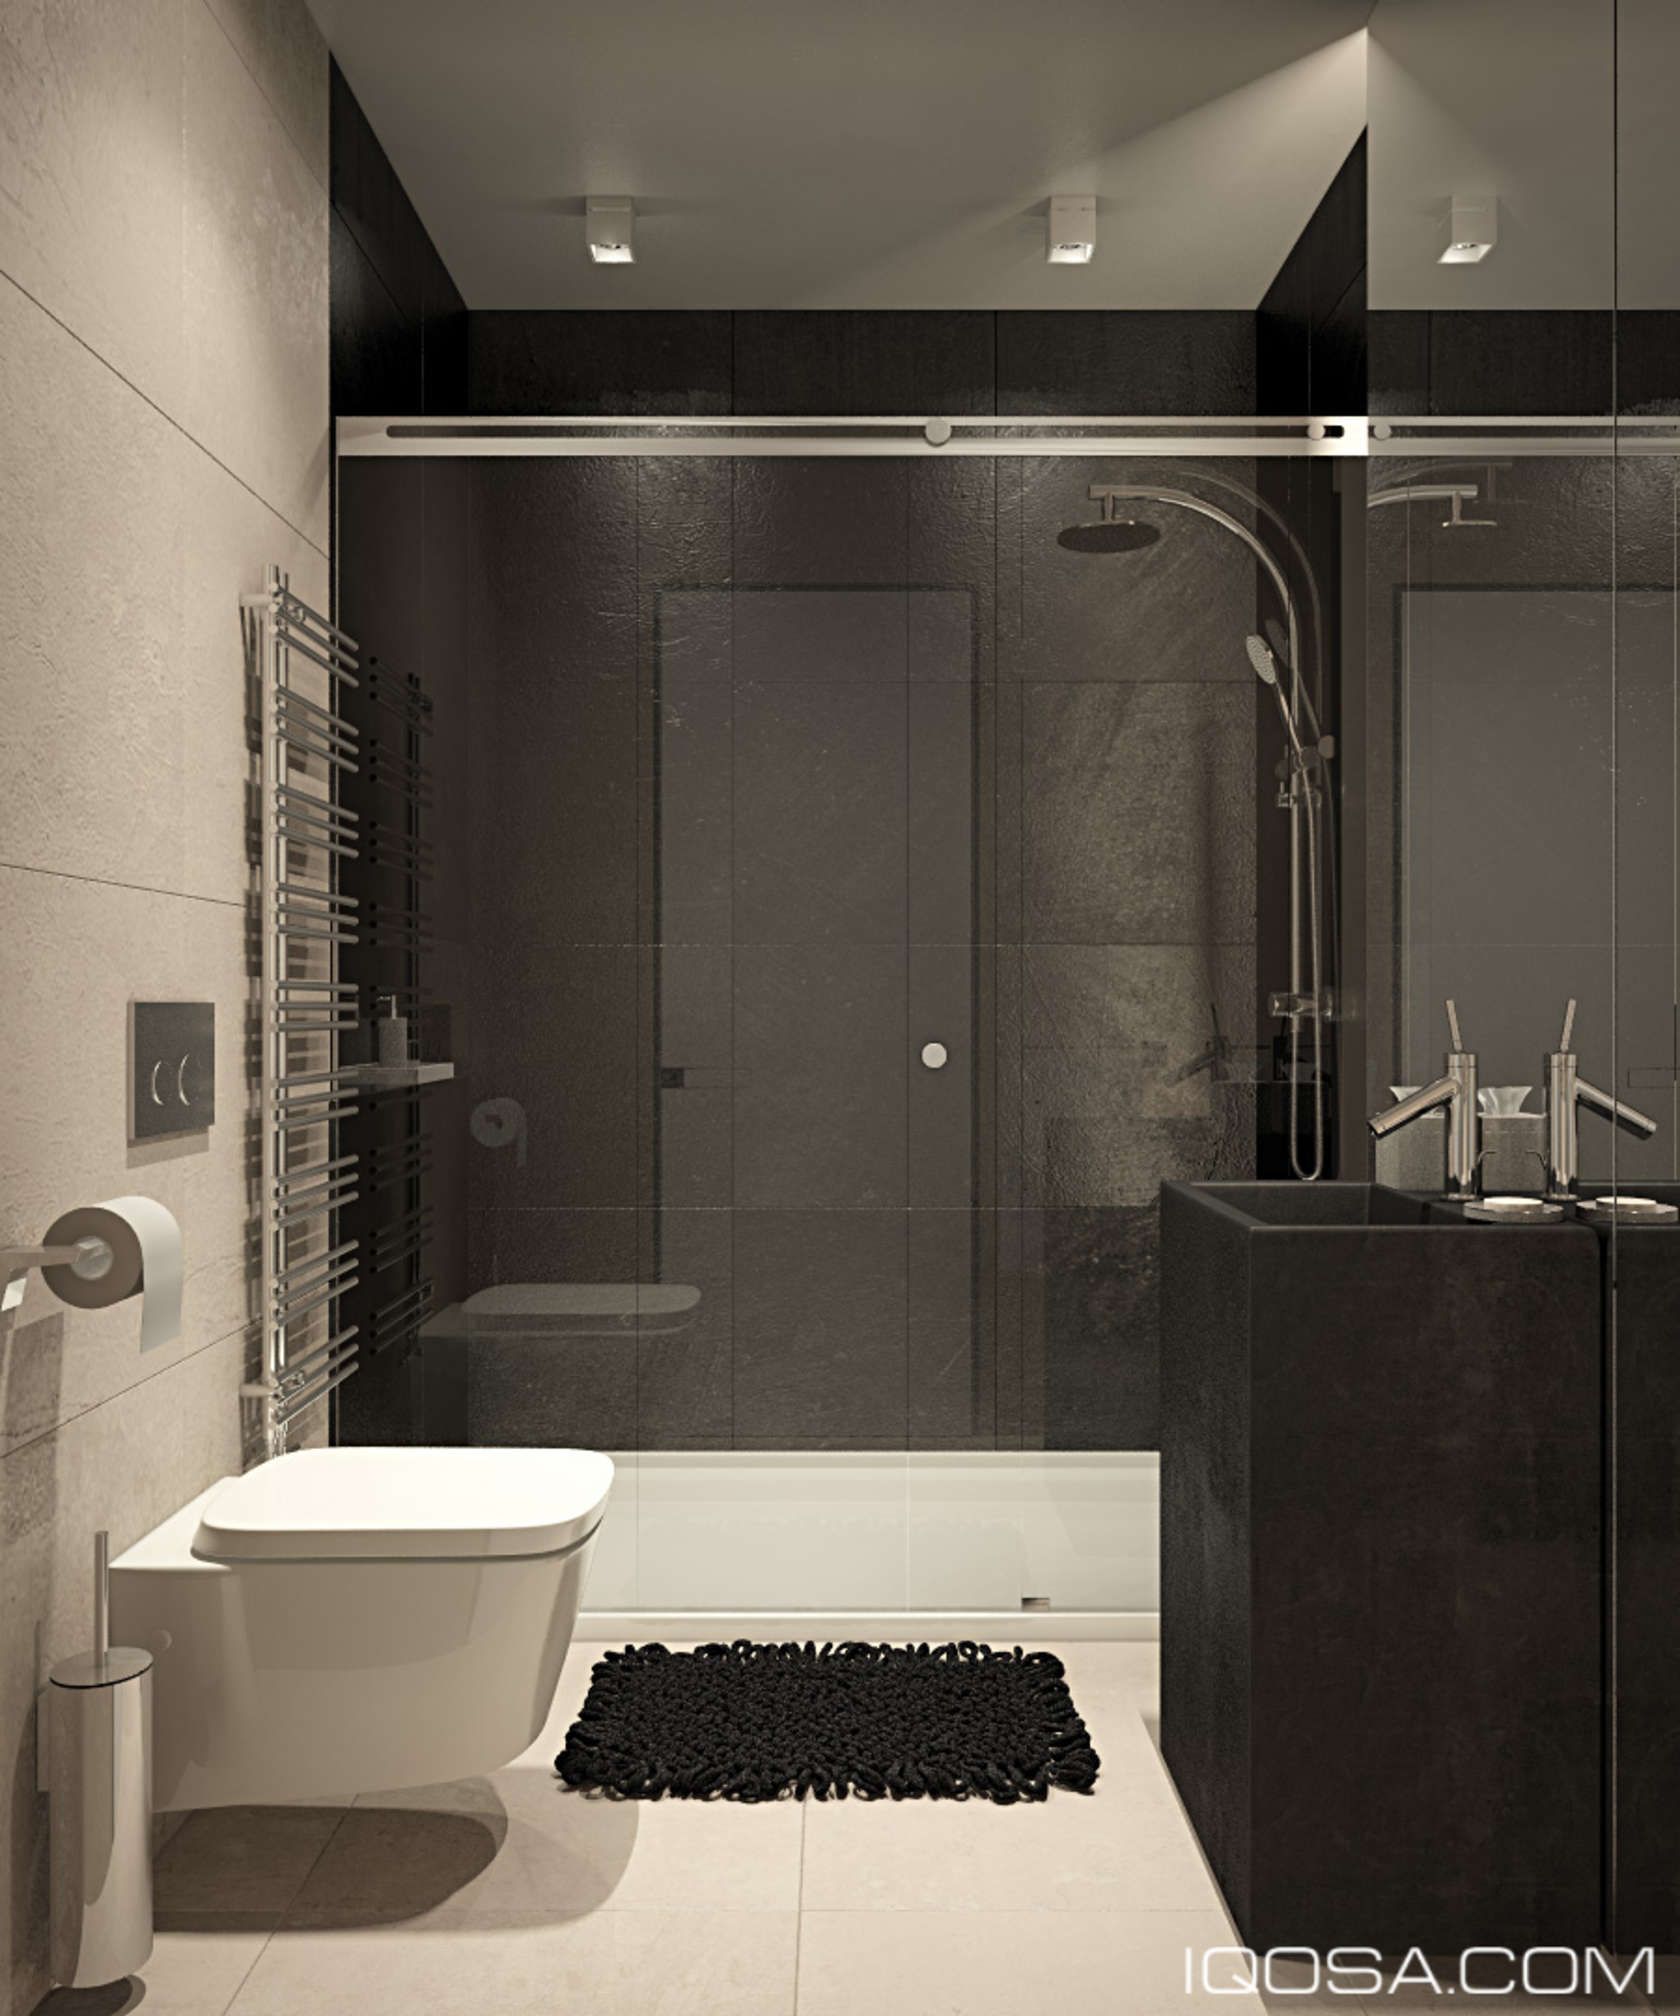 Dark Walls In A Small Bathroom - An approachable take on luxury apartment design